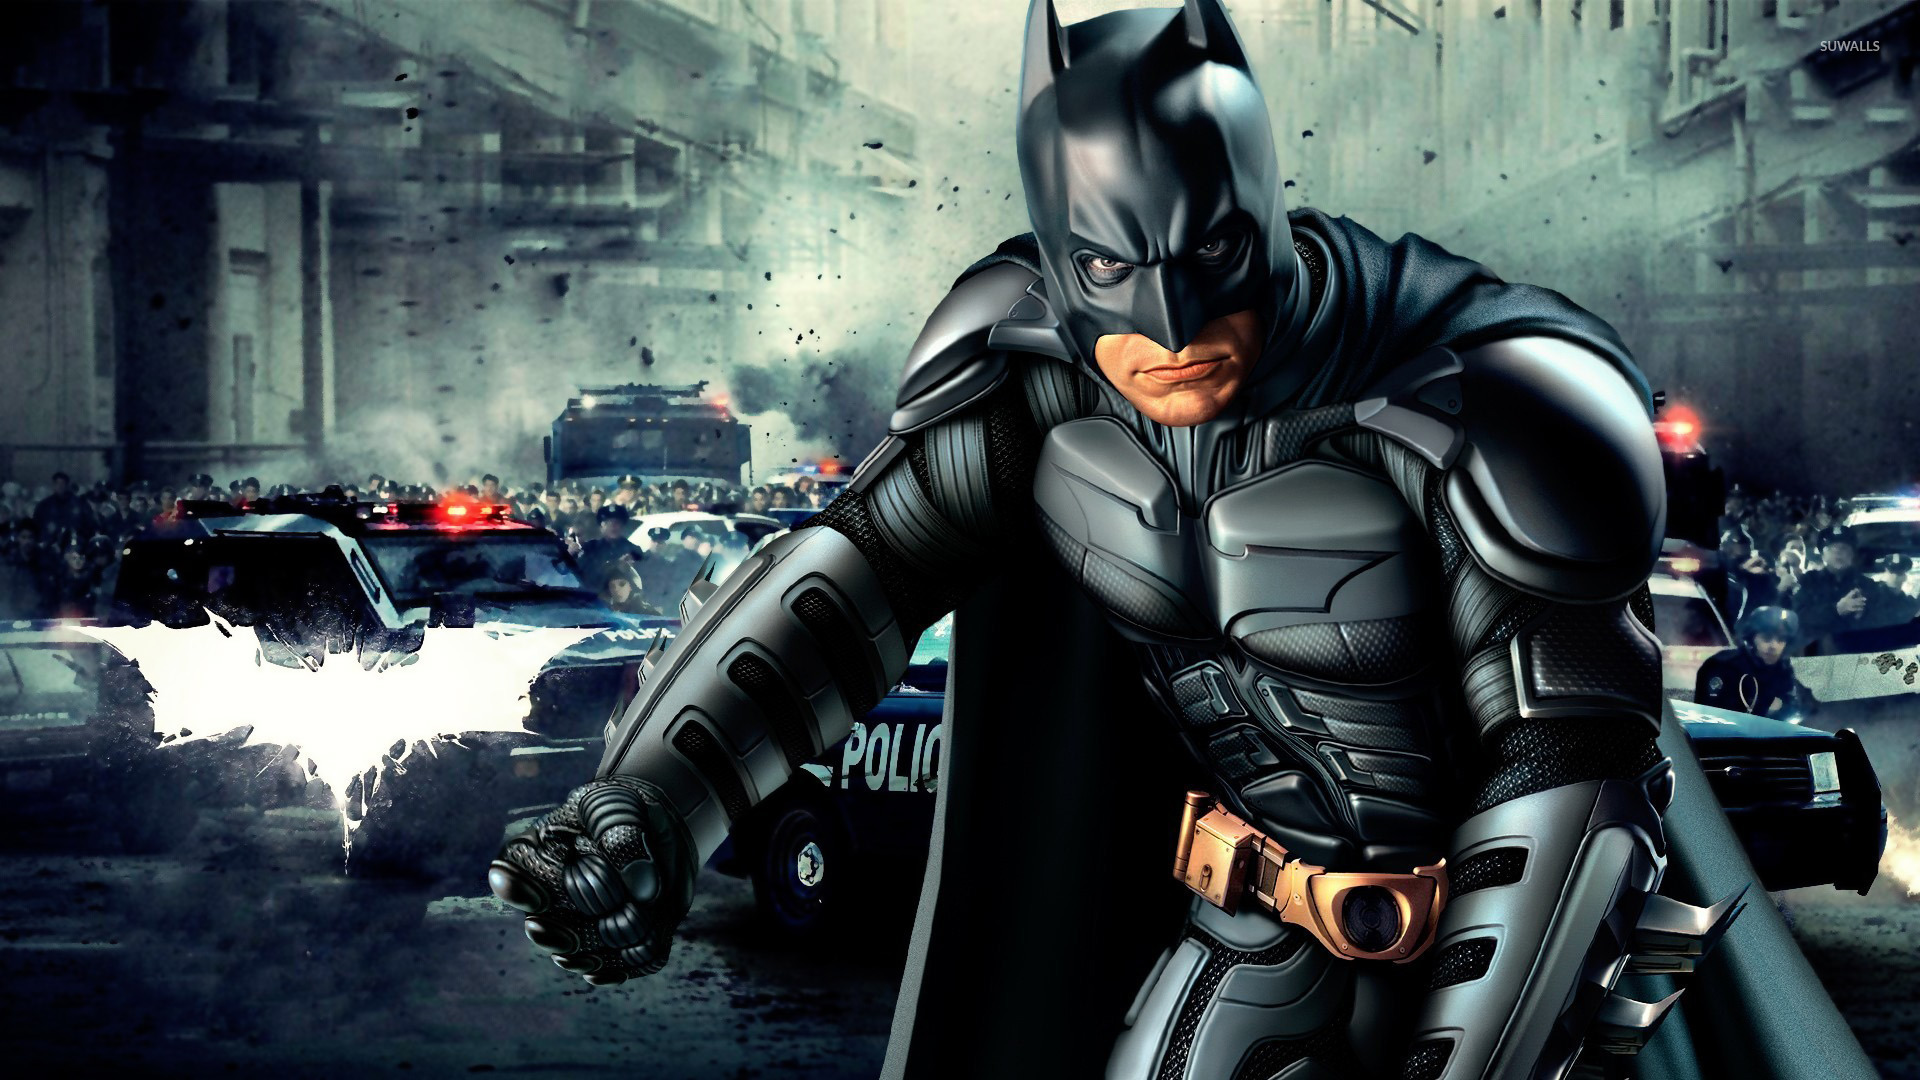 the dark knight rises [5] wallpaper - movie wallpapers - #44305